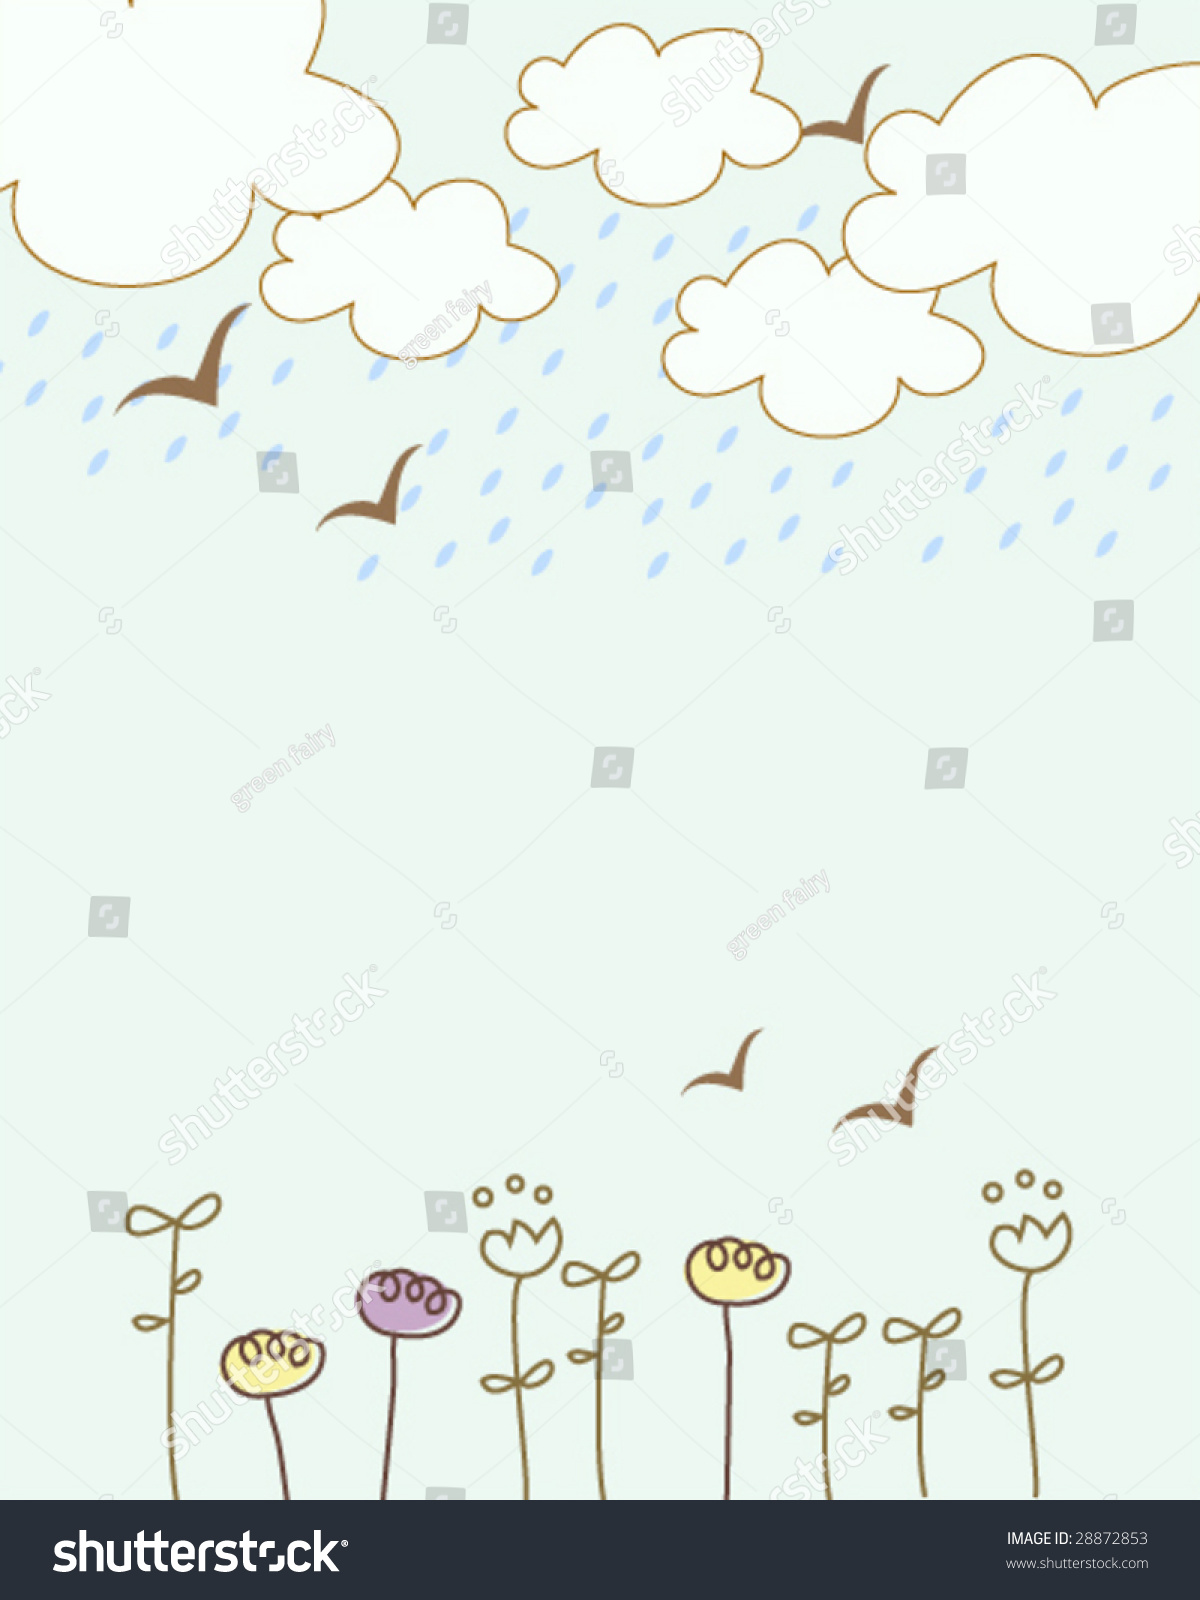 Book Cover Cute ~ Cute little floral on rainy days stock vector